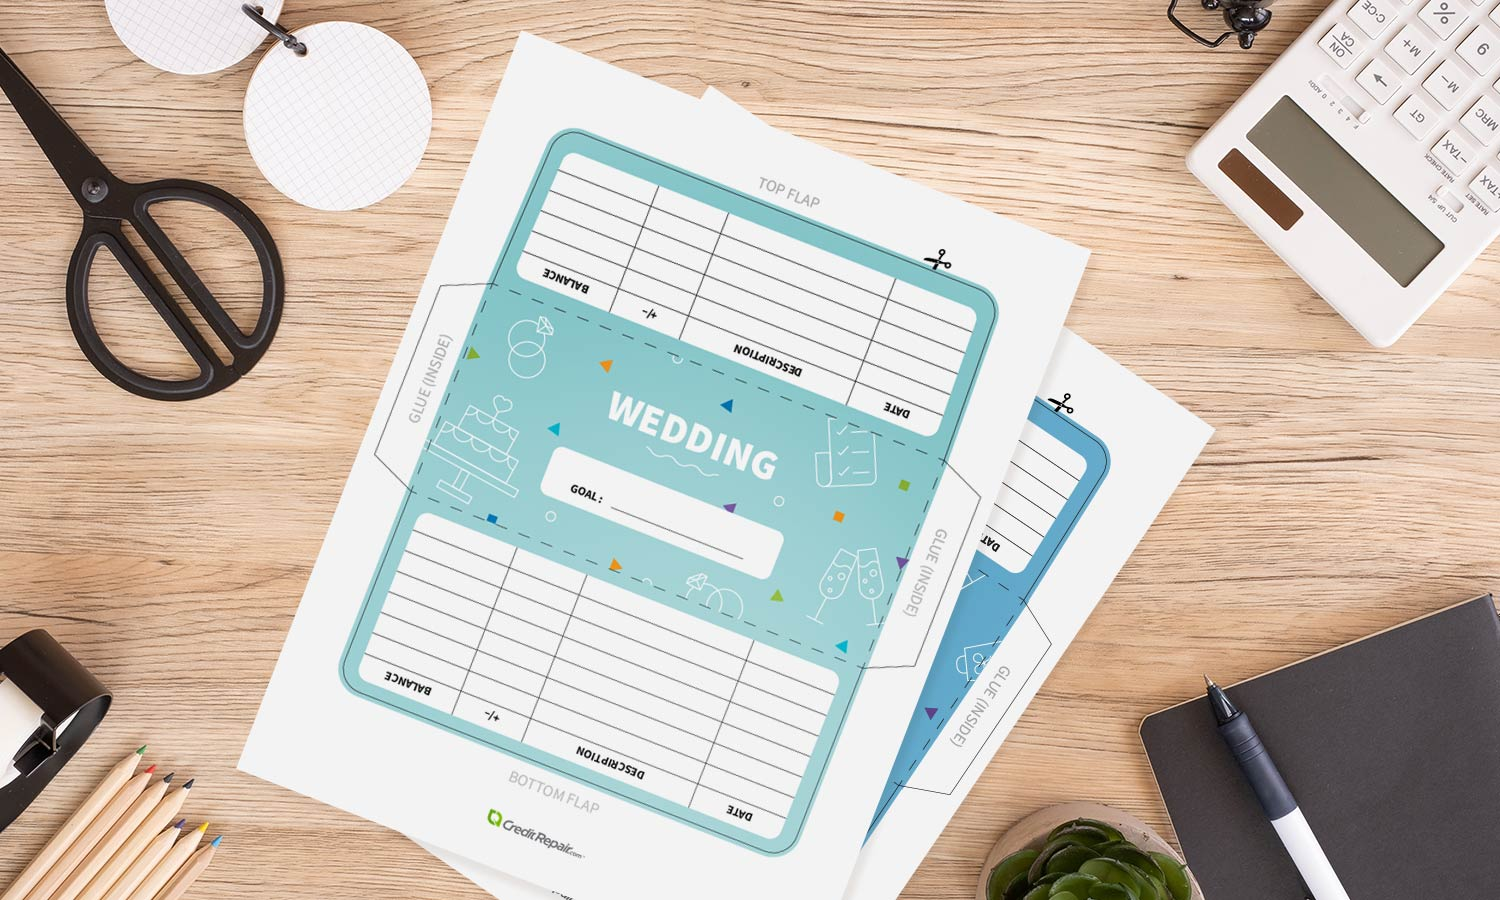 Wedding-themed cash envelope printables on a table